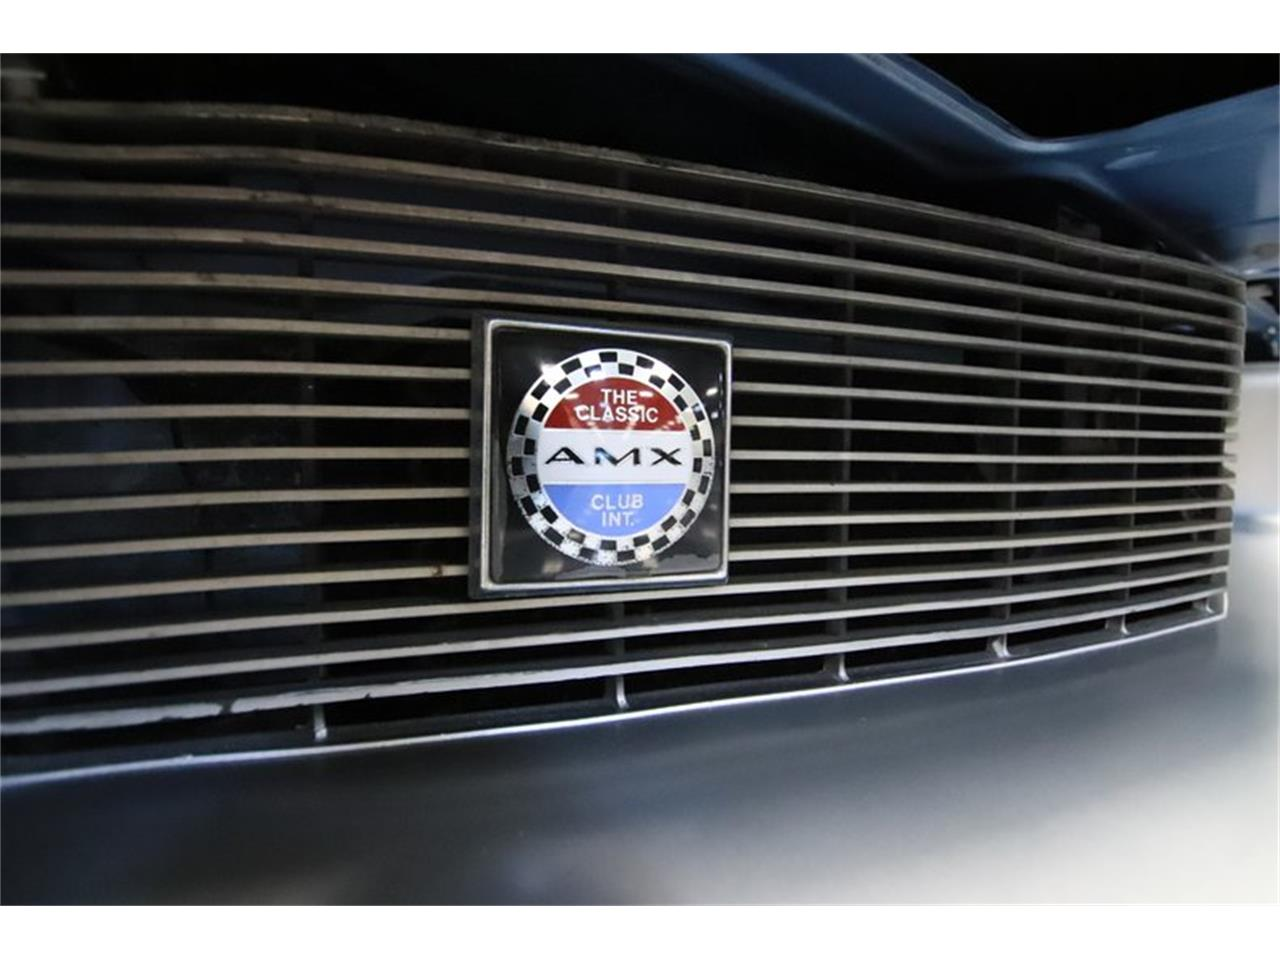 Large Picture of '69 AMC AMX located in Mesa Arizona - $39,995.00 - PJQ9